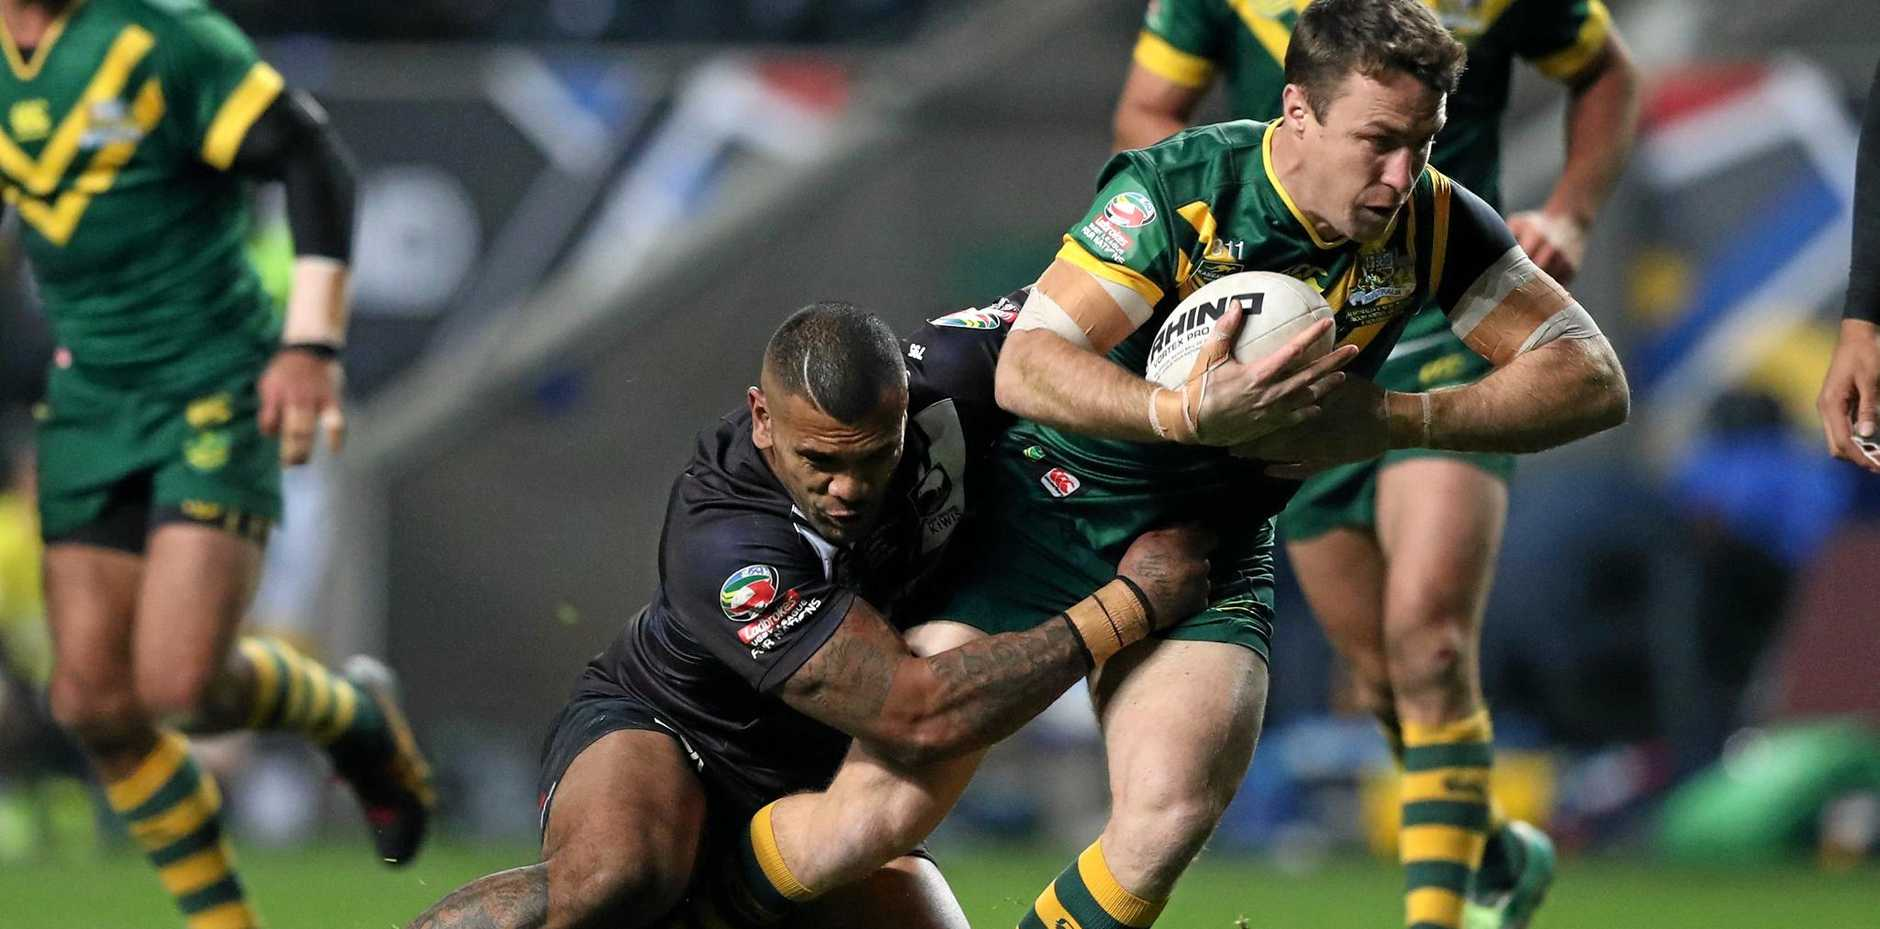 Australia's James Maloney is tackled by New Zealand's Manu Ma'u during the Four Nations rugby league match at the Ricoh Arena, Coventry, England, Saturday Nov. 5, 2016. (Simon Cooper/PA via AP)